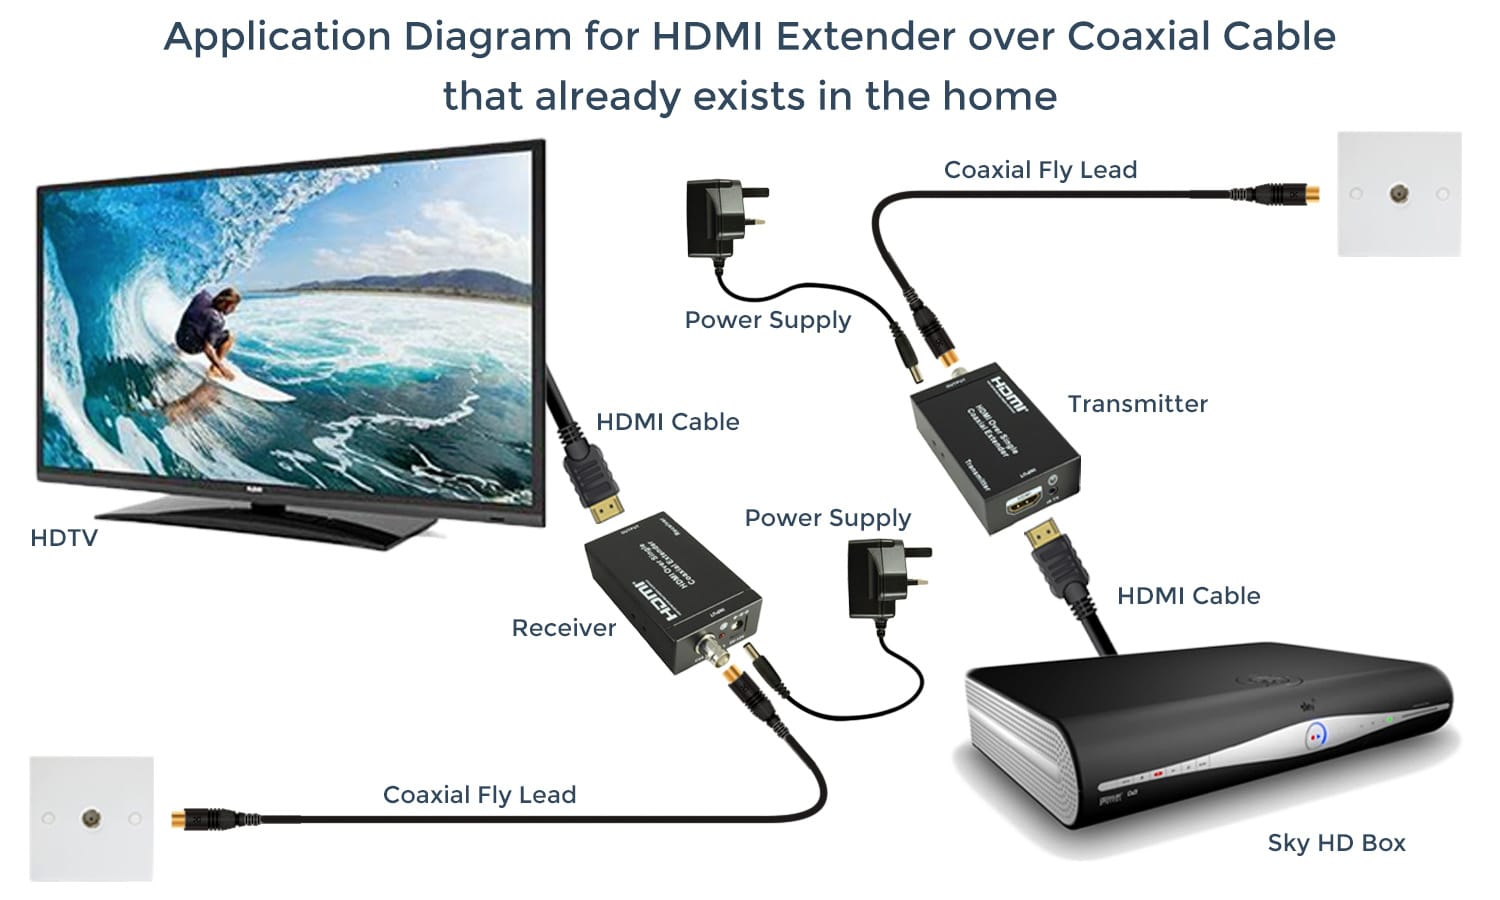 hight resolution of  hdmi extender over coaxial cable already exists in the home